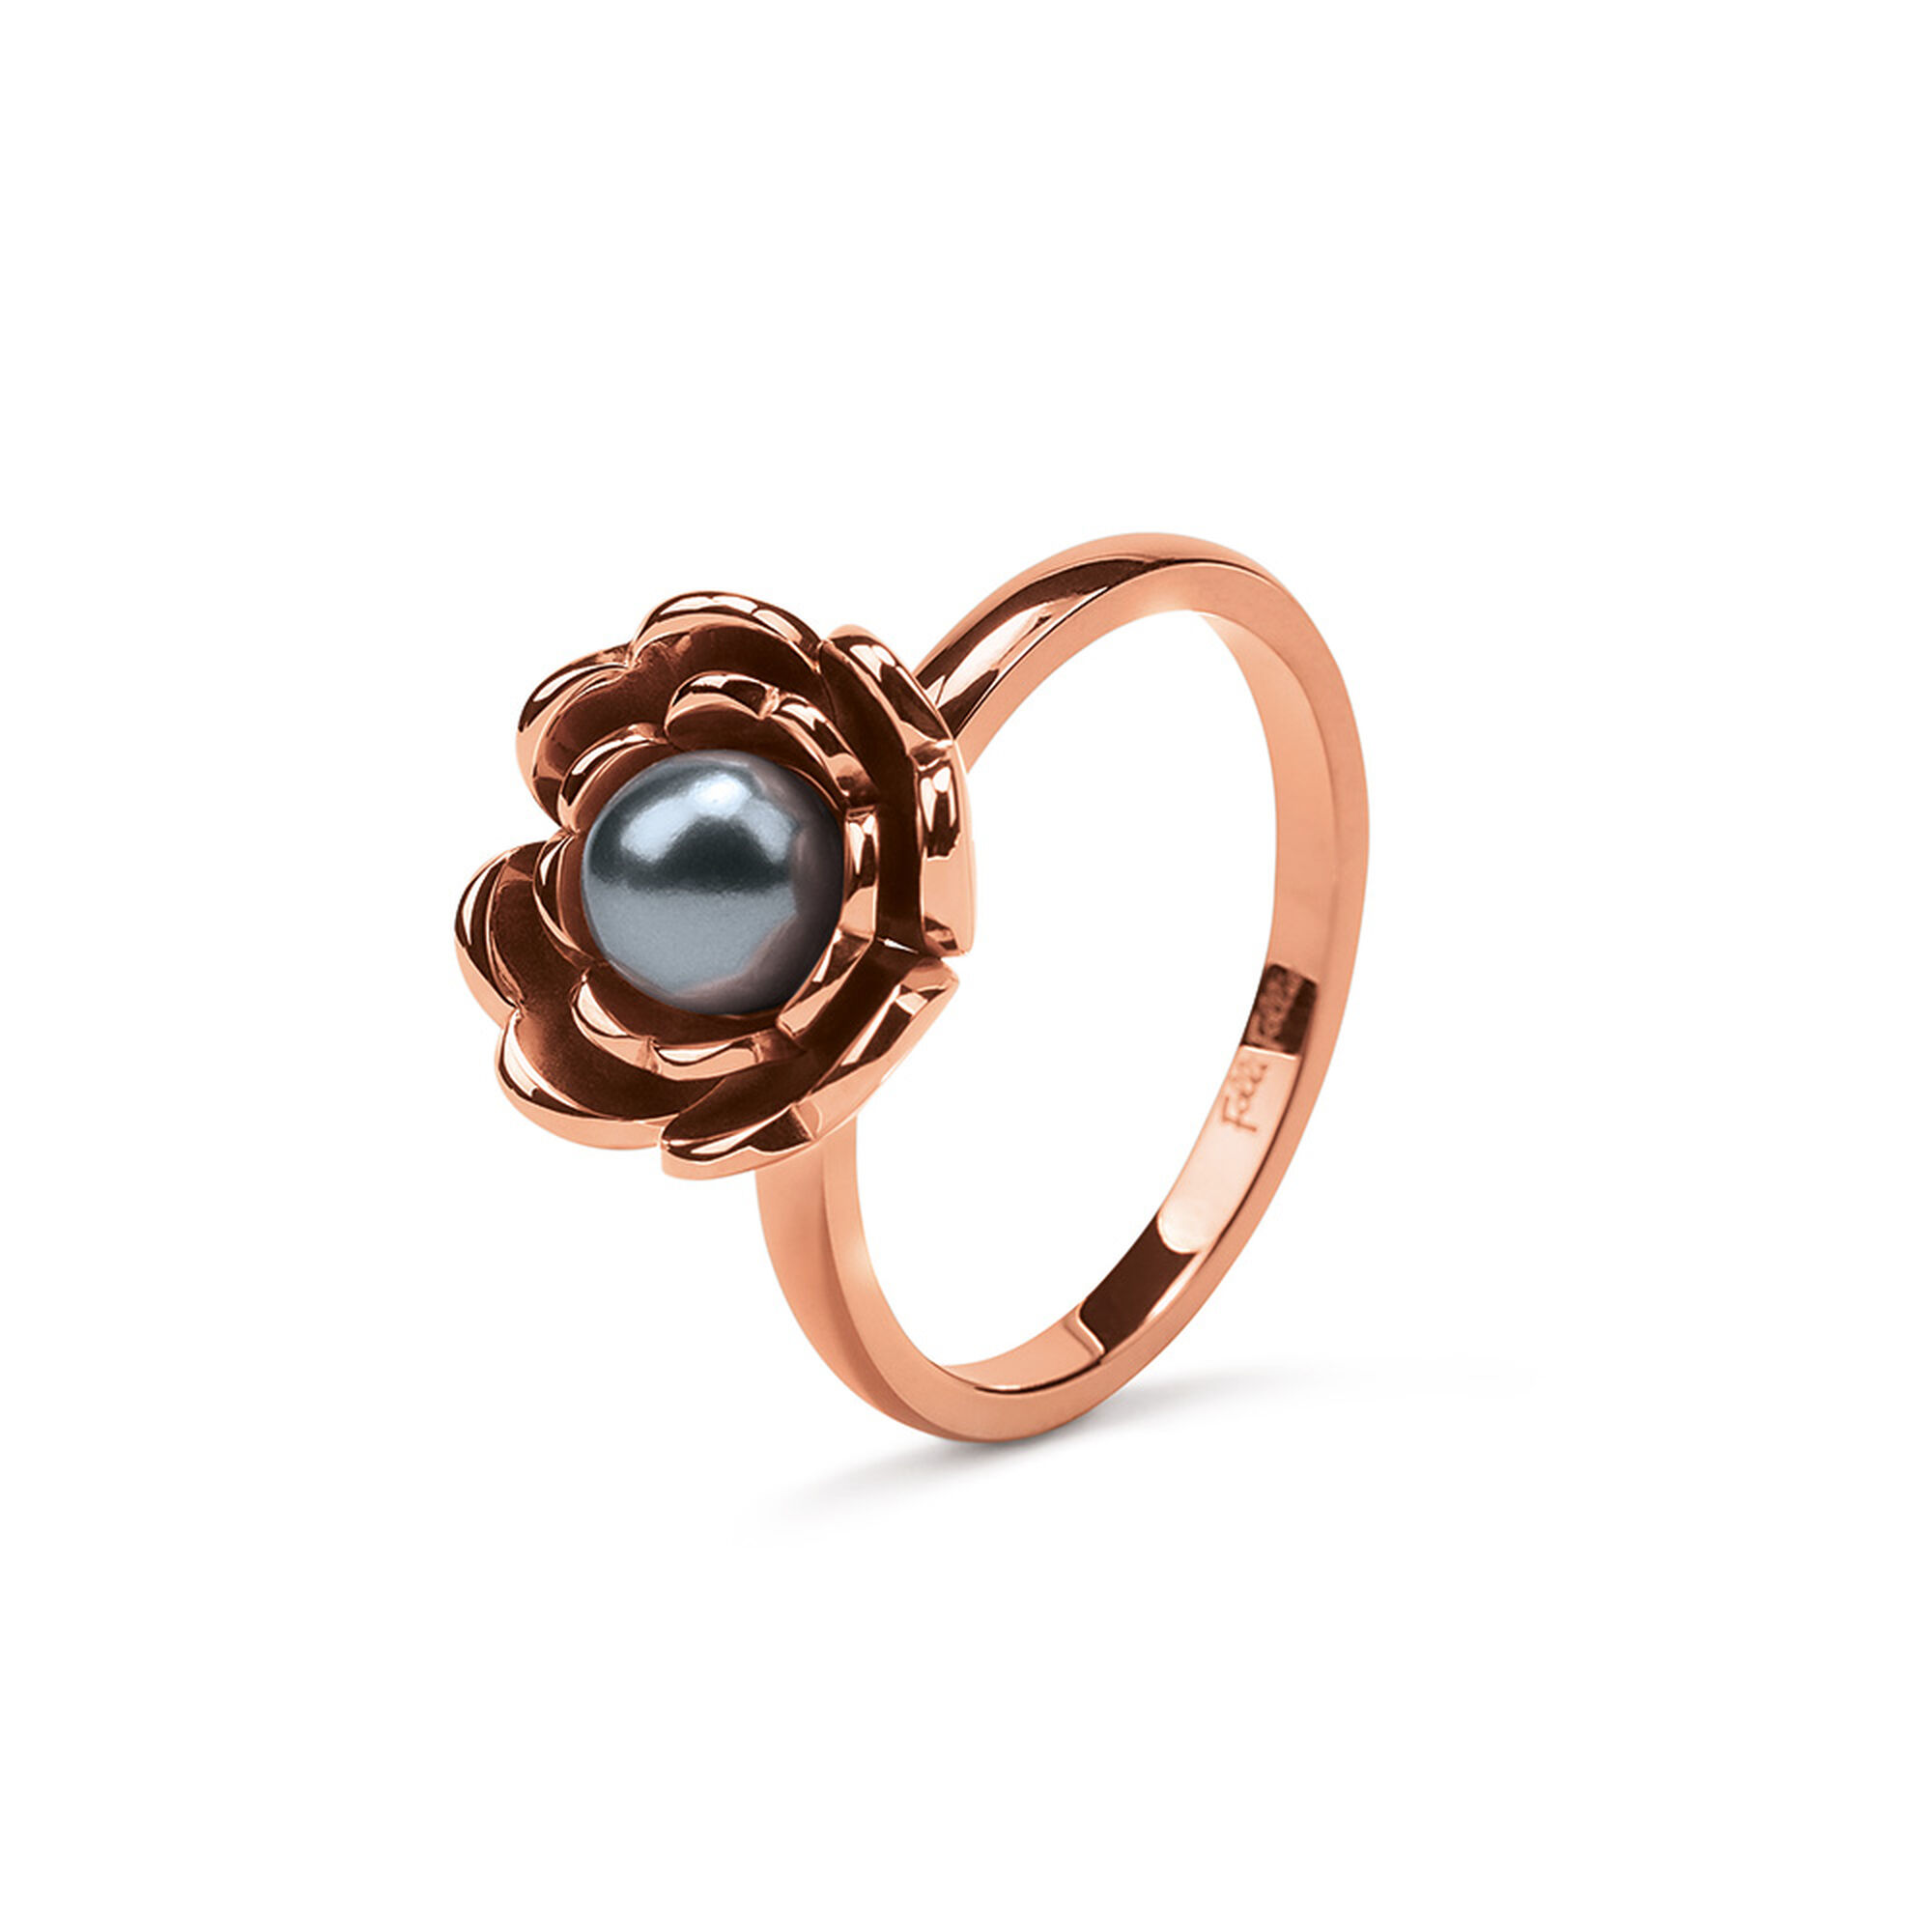 south ring pinterest a rings with diamonds joyer con wedding and black perlas pearl sea pin diamond